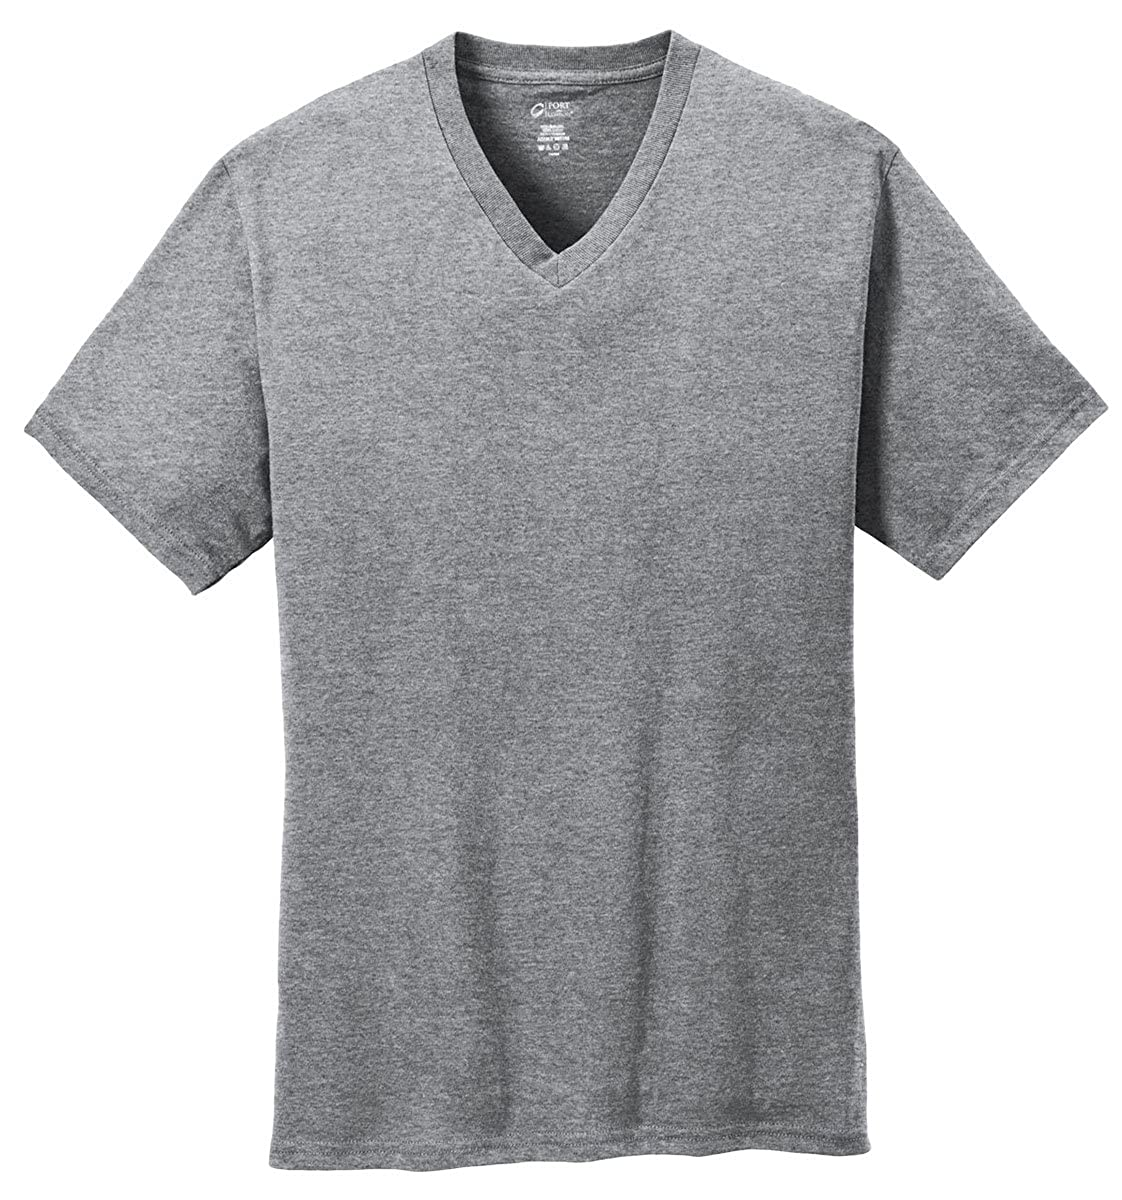 Port /& Company 5.4-oz 100/% Cotton V-Neck T-Shirt Athletic Heather PC54V